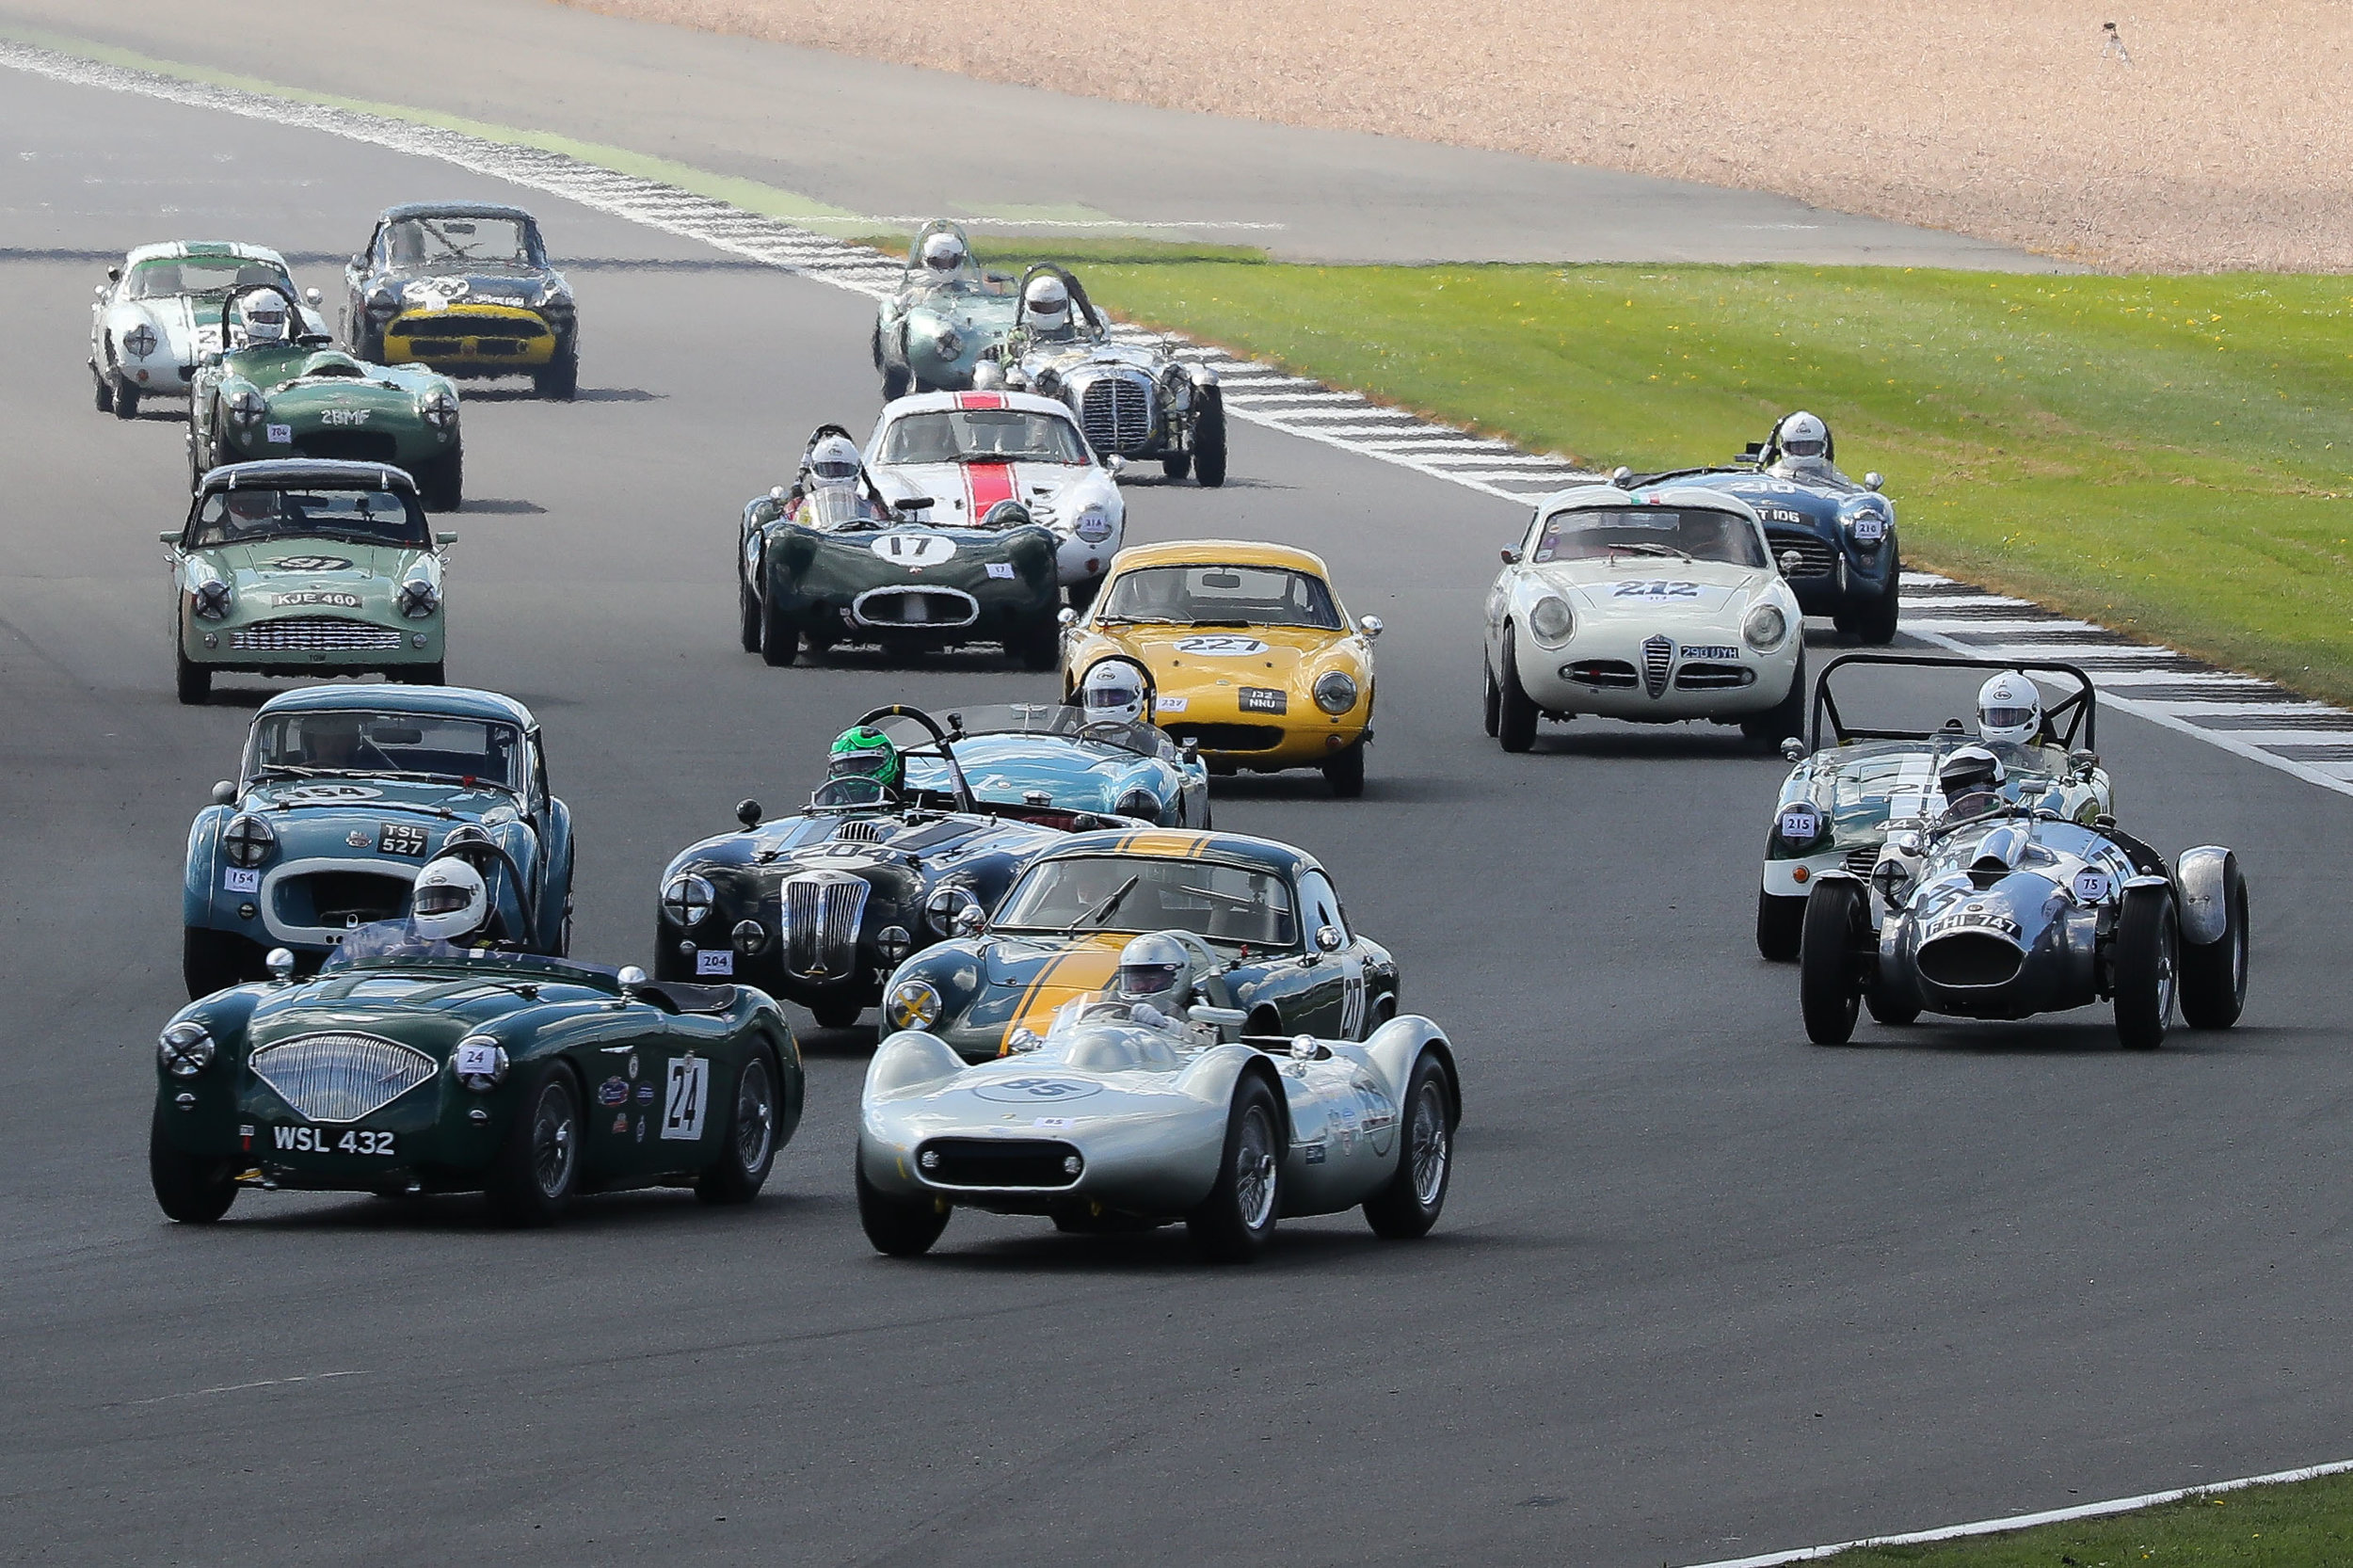 All great cars up to and including the final row. Stephen Bond in his Lister Bristol alongside Jim Campbell in his Austin Healey 100/4. To our right is Peter Campbell's one off Wingfield Bristol Special. There are 4 Elites here, the leading one of Mike Freeman but the yellow one driven by Gideon Hudson is new to our series.                                                                                          Photo - Richard Styles